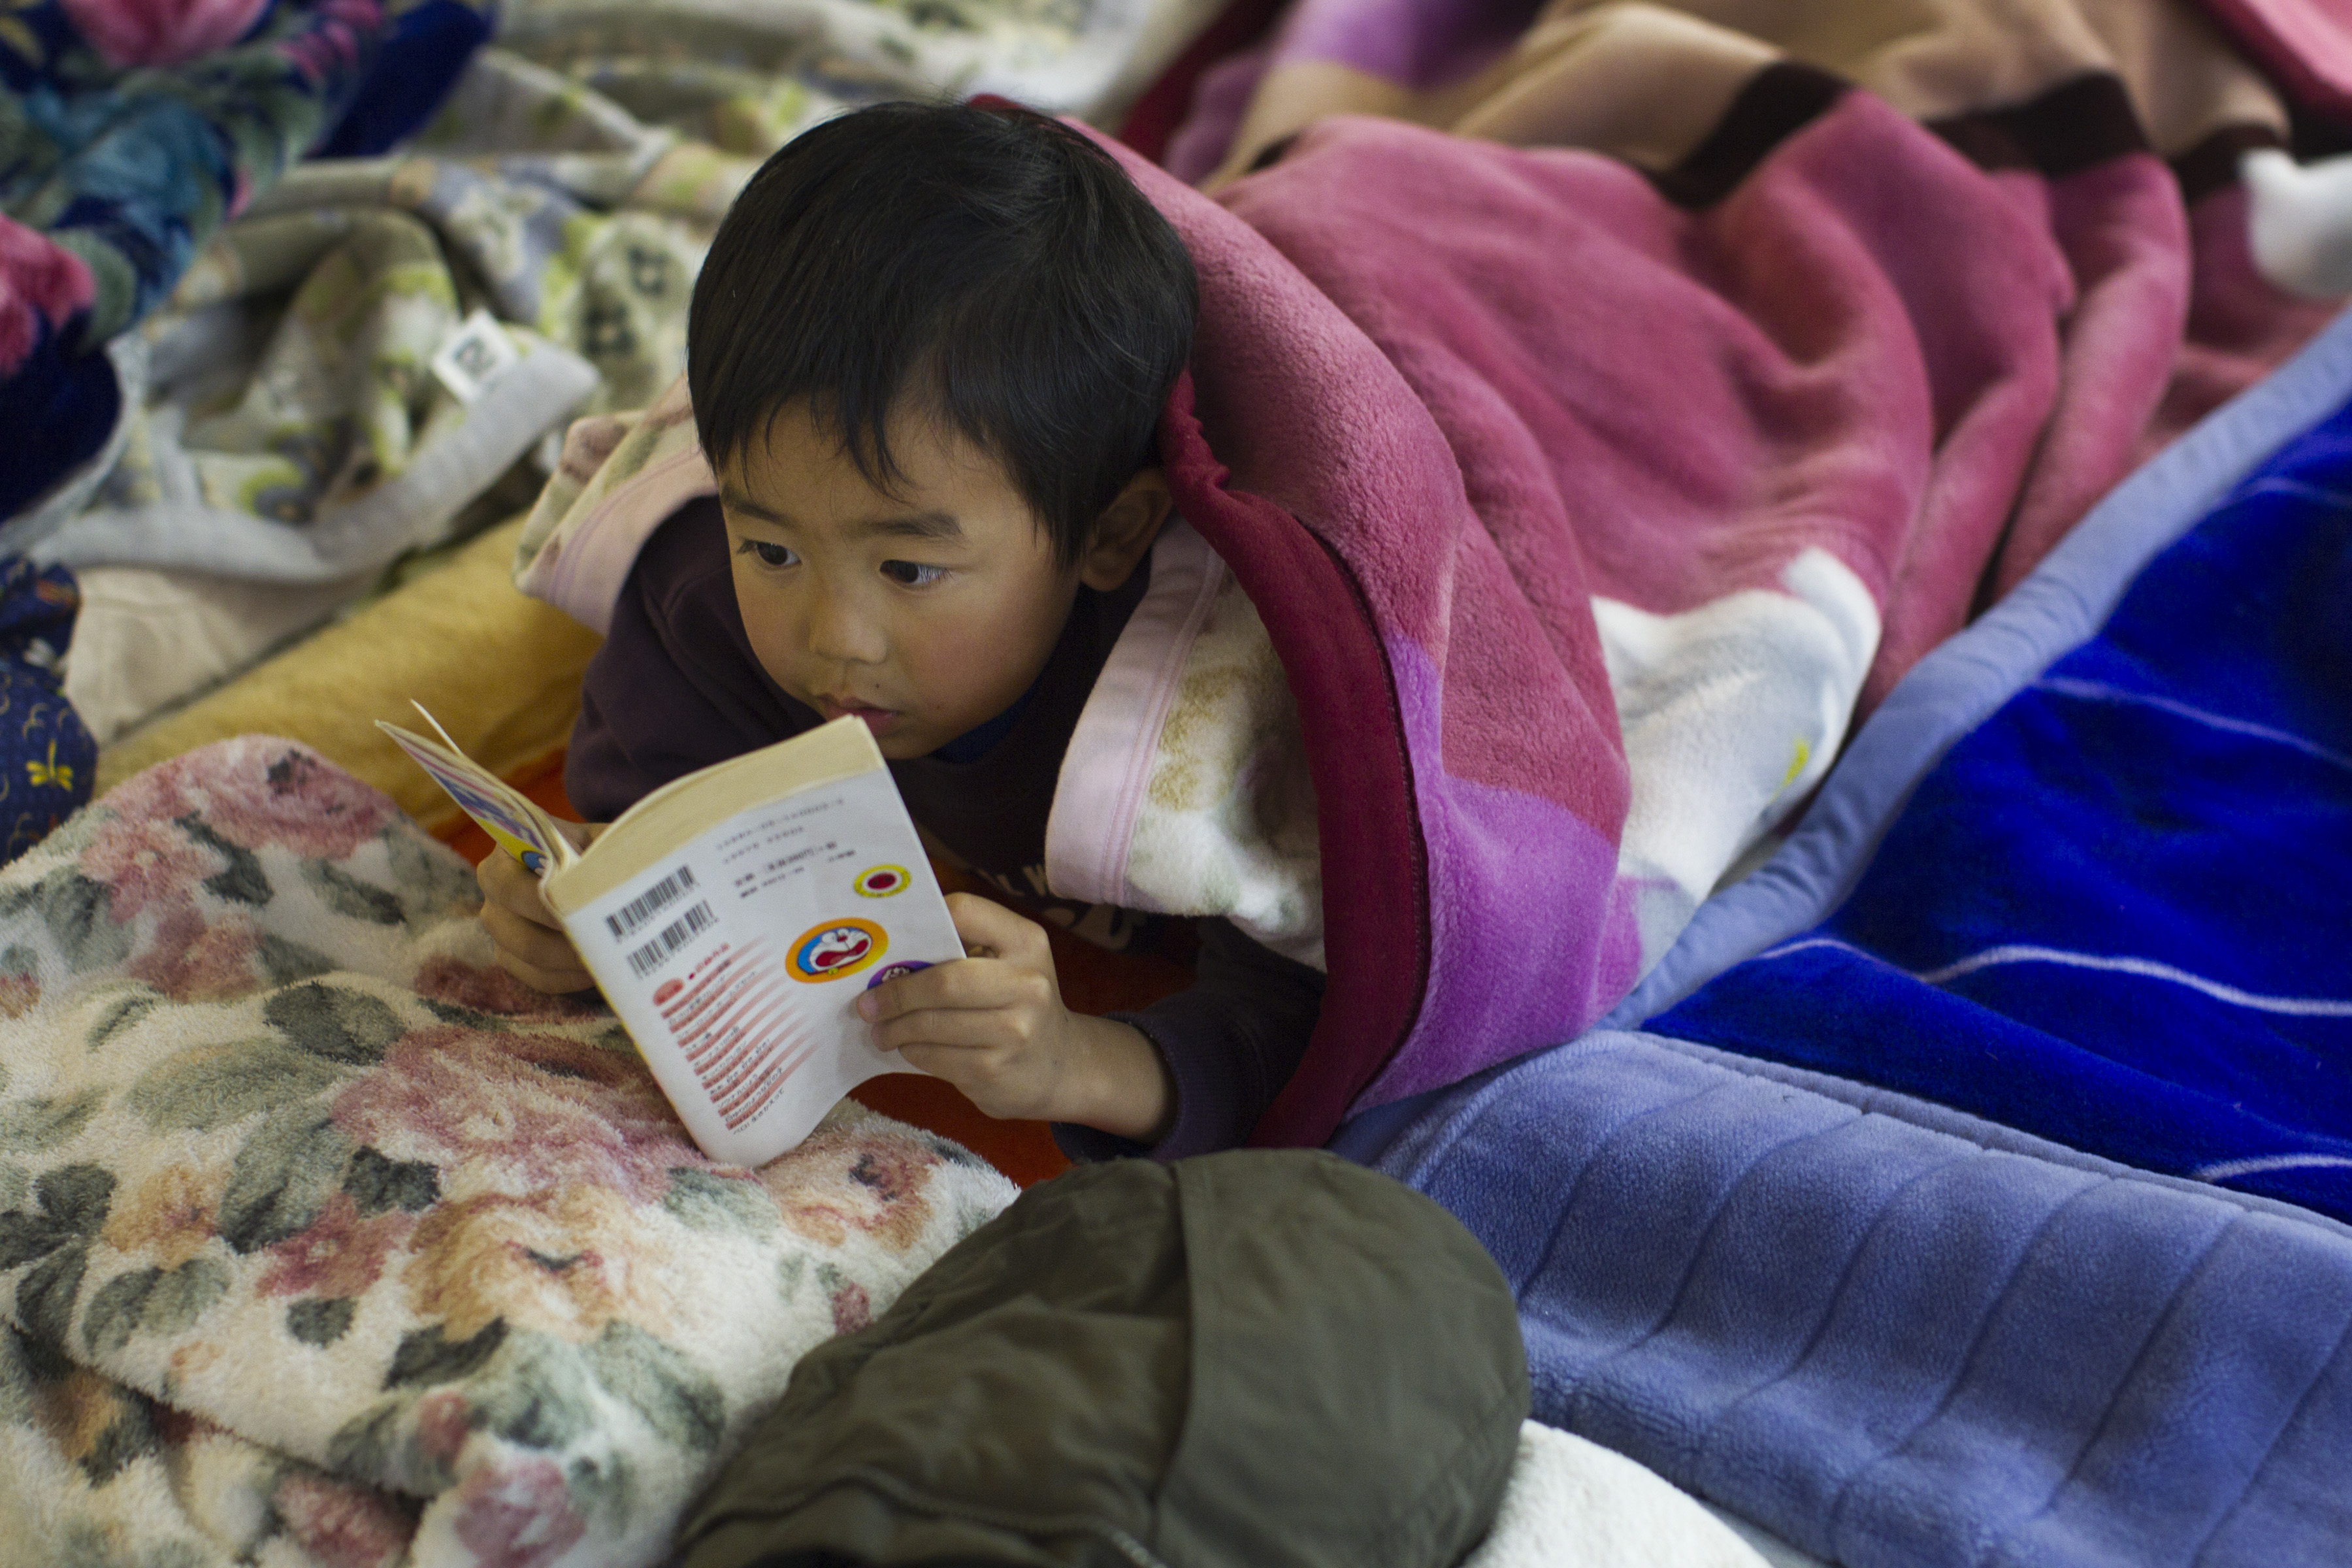 Child in a sleeping bag reading a book